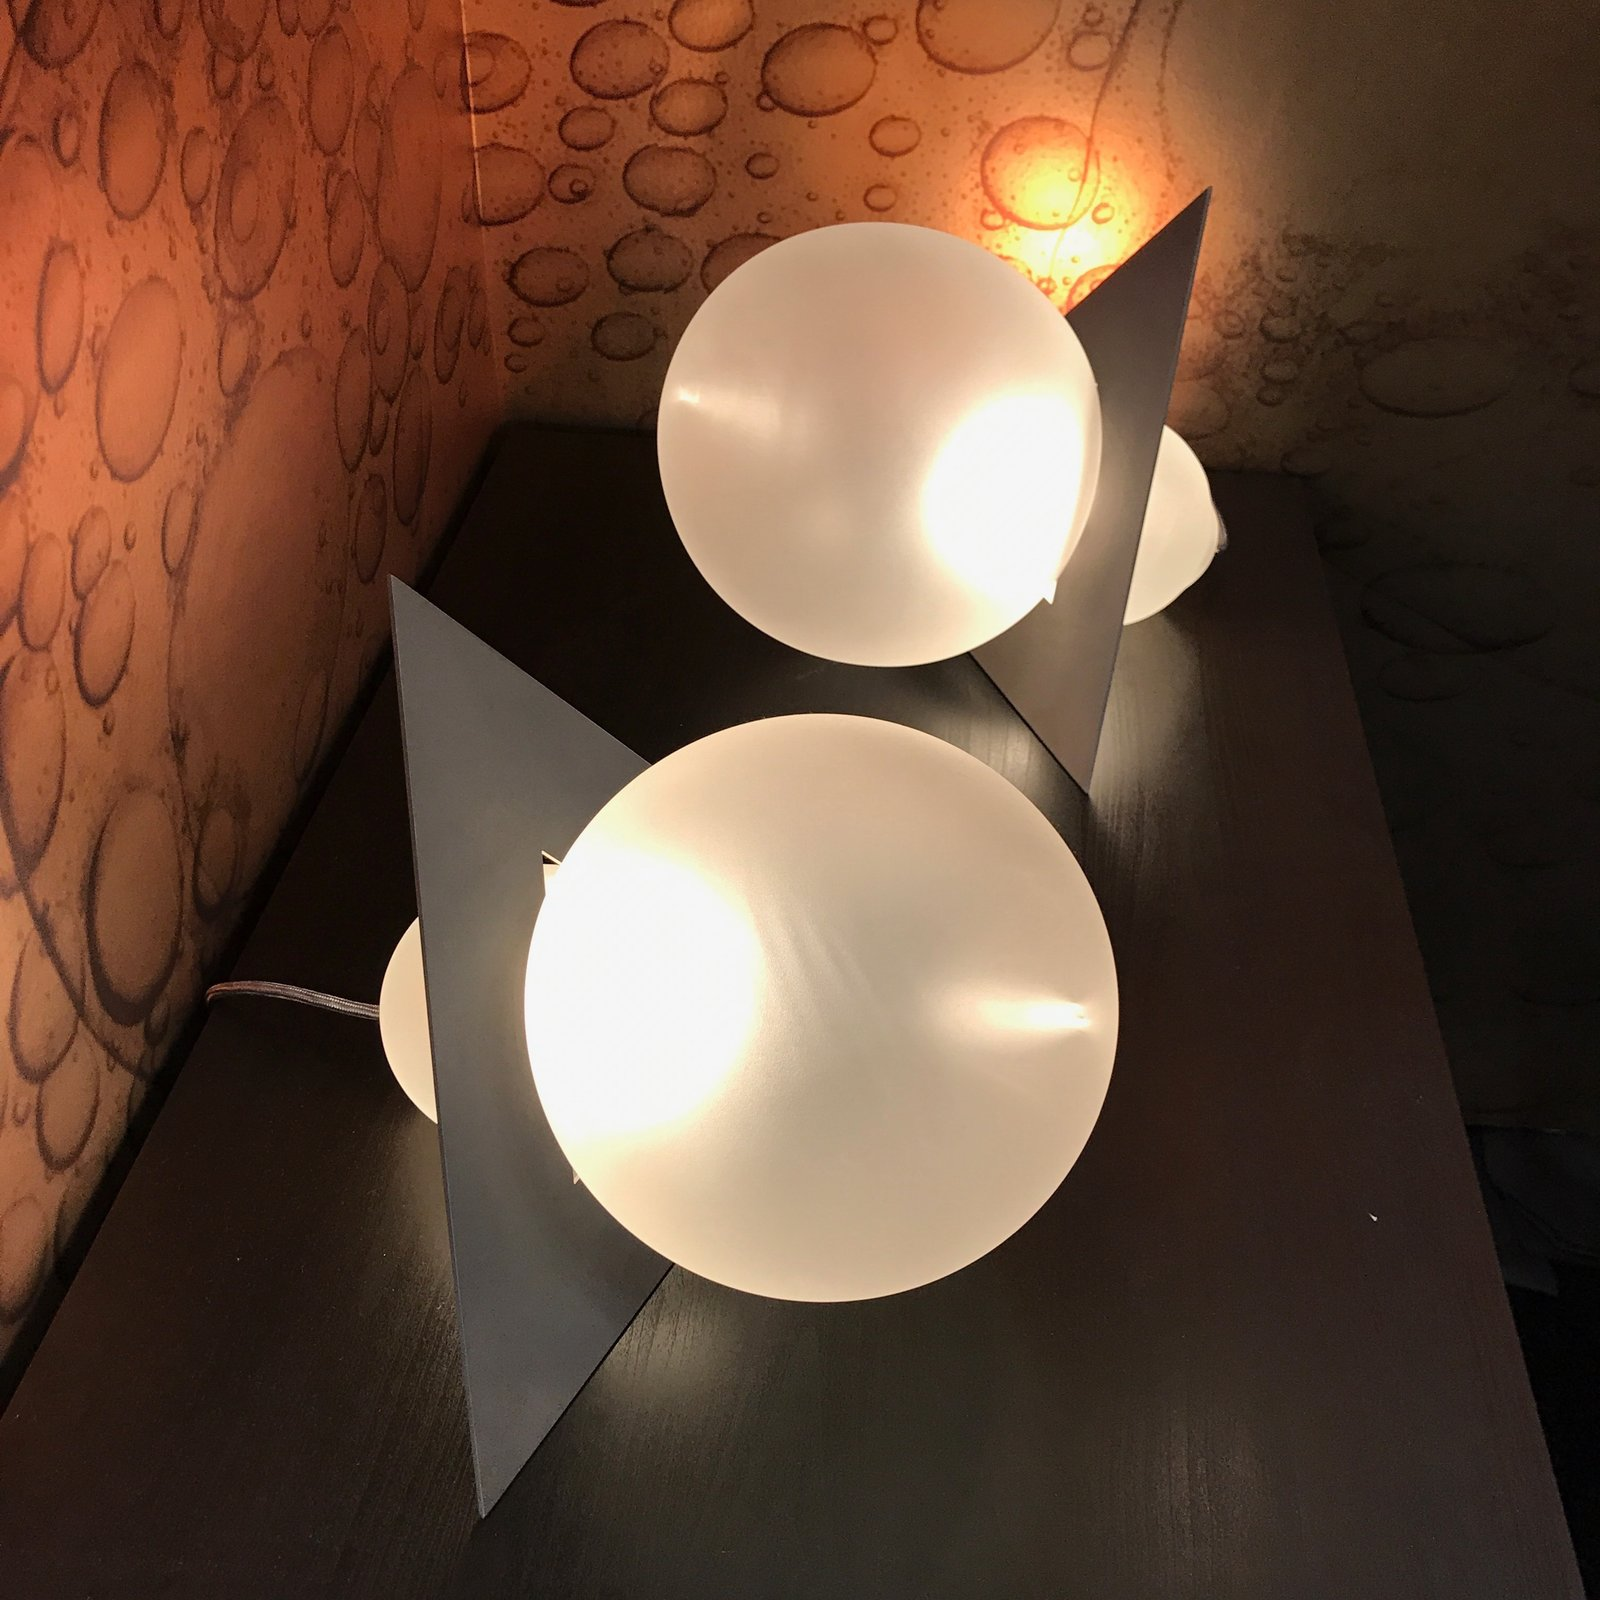 Portland-based glassblowing masters Esque partnered with designer Harry Allen on Liaison, lighting pieces made of sand-blasted glass and stainless steel. The wall covering in the background is by Flavor Paper, frequent collaborators of Esque's.  Photo 4 of 36 in The Best of New York Design Week 2017